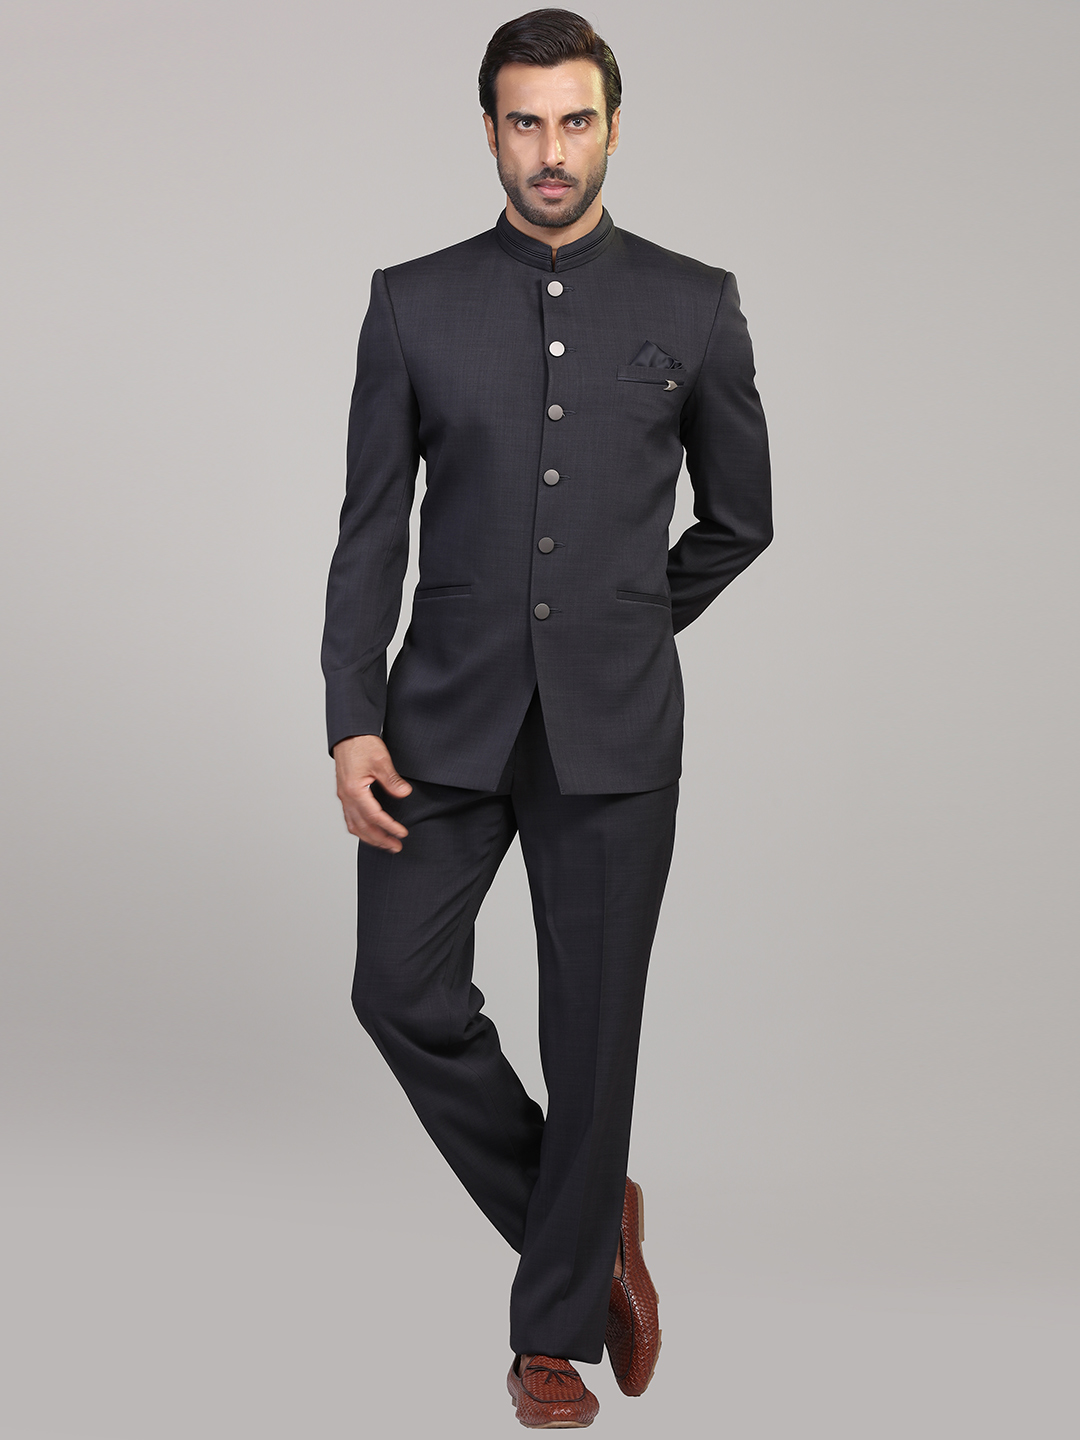 Mens Coat Suits Buy Mens Coat Pant Designs For Wedding 2021 2022